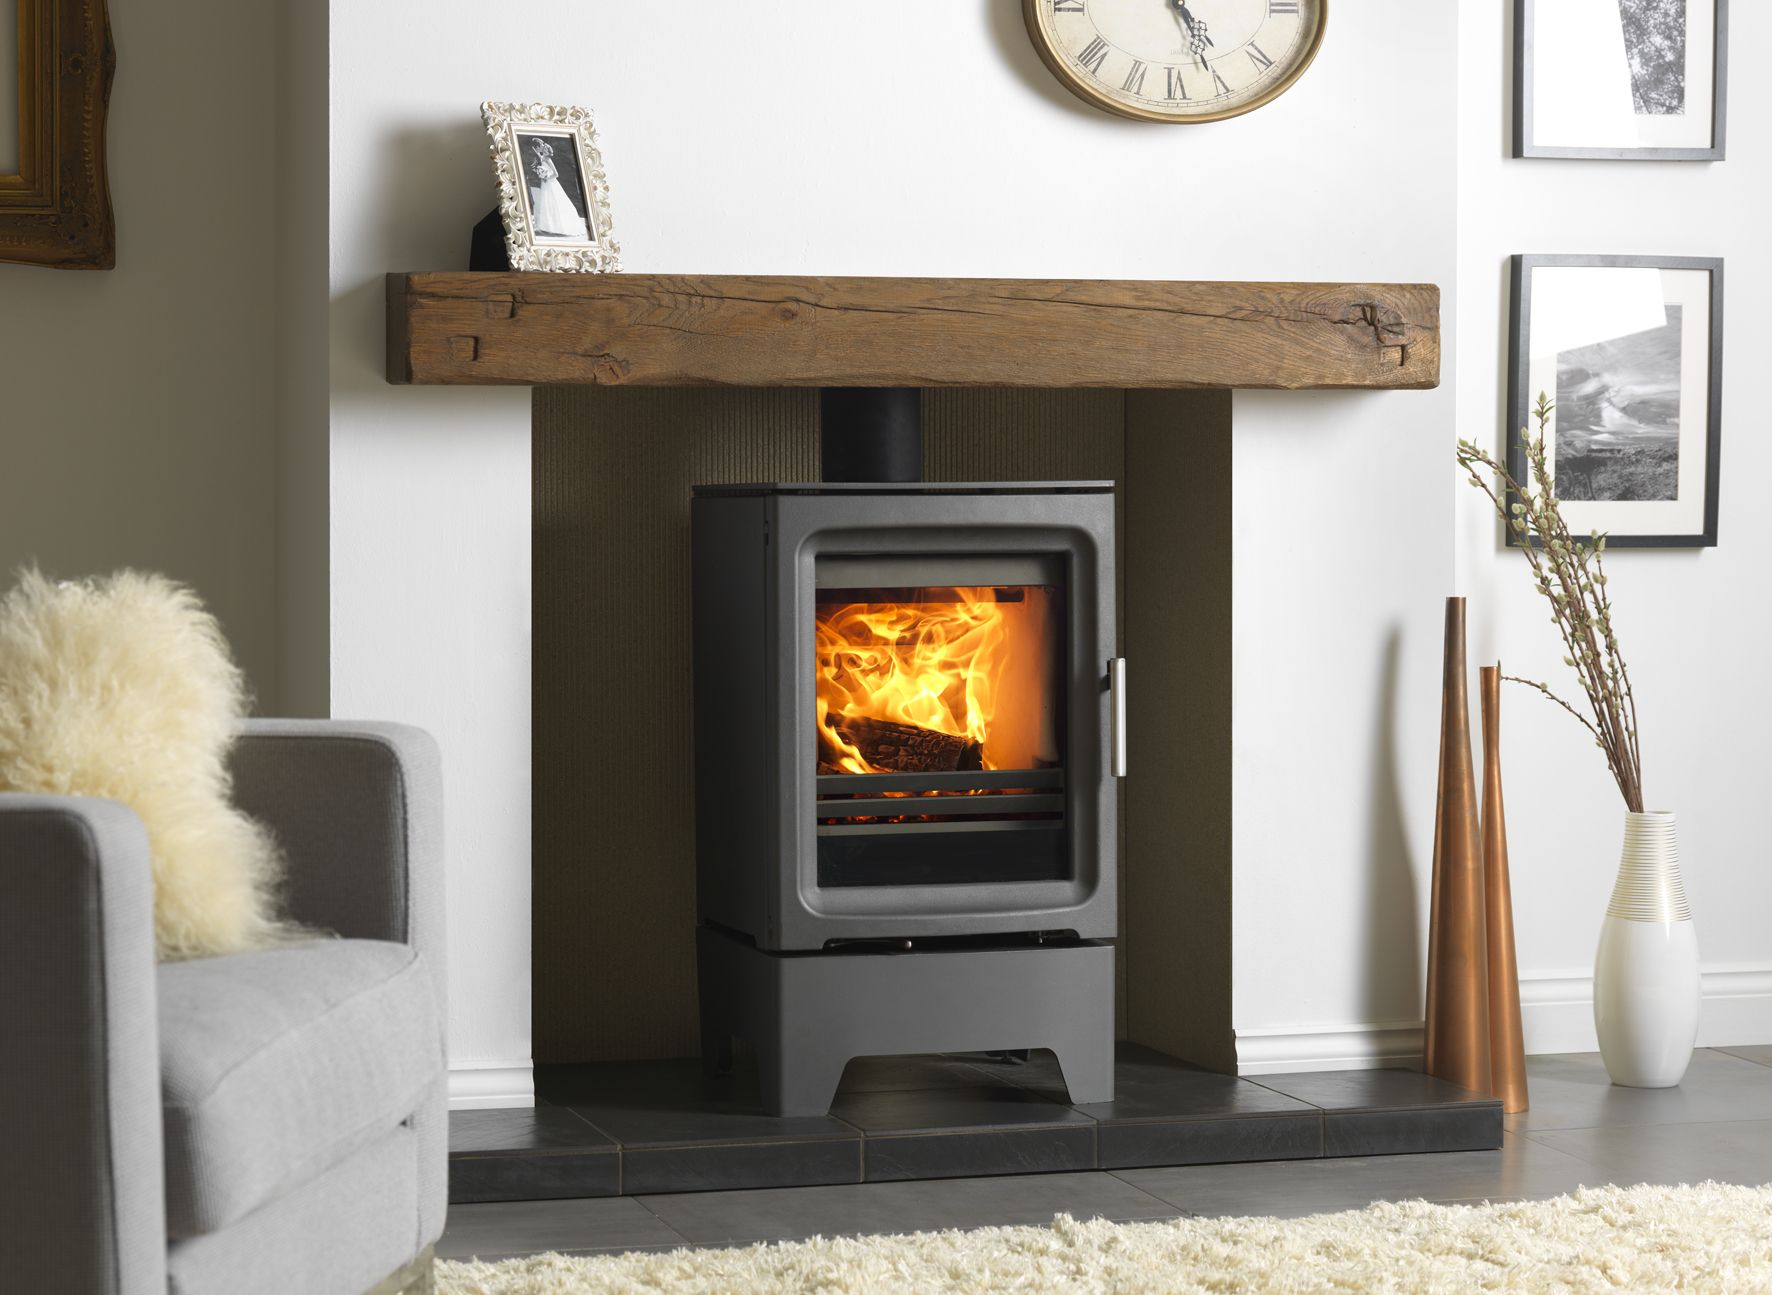 The purevison hd kw stove on tall stand shown in and inglenook